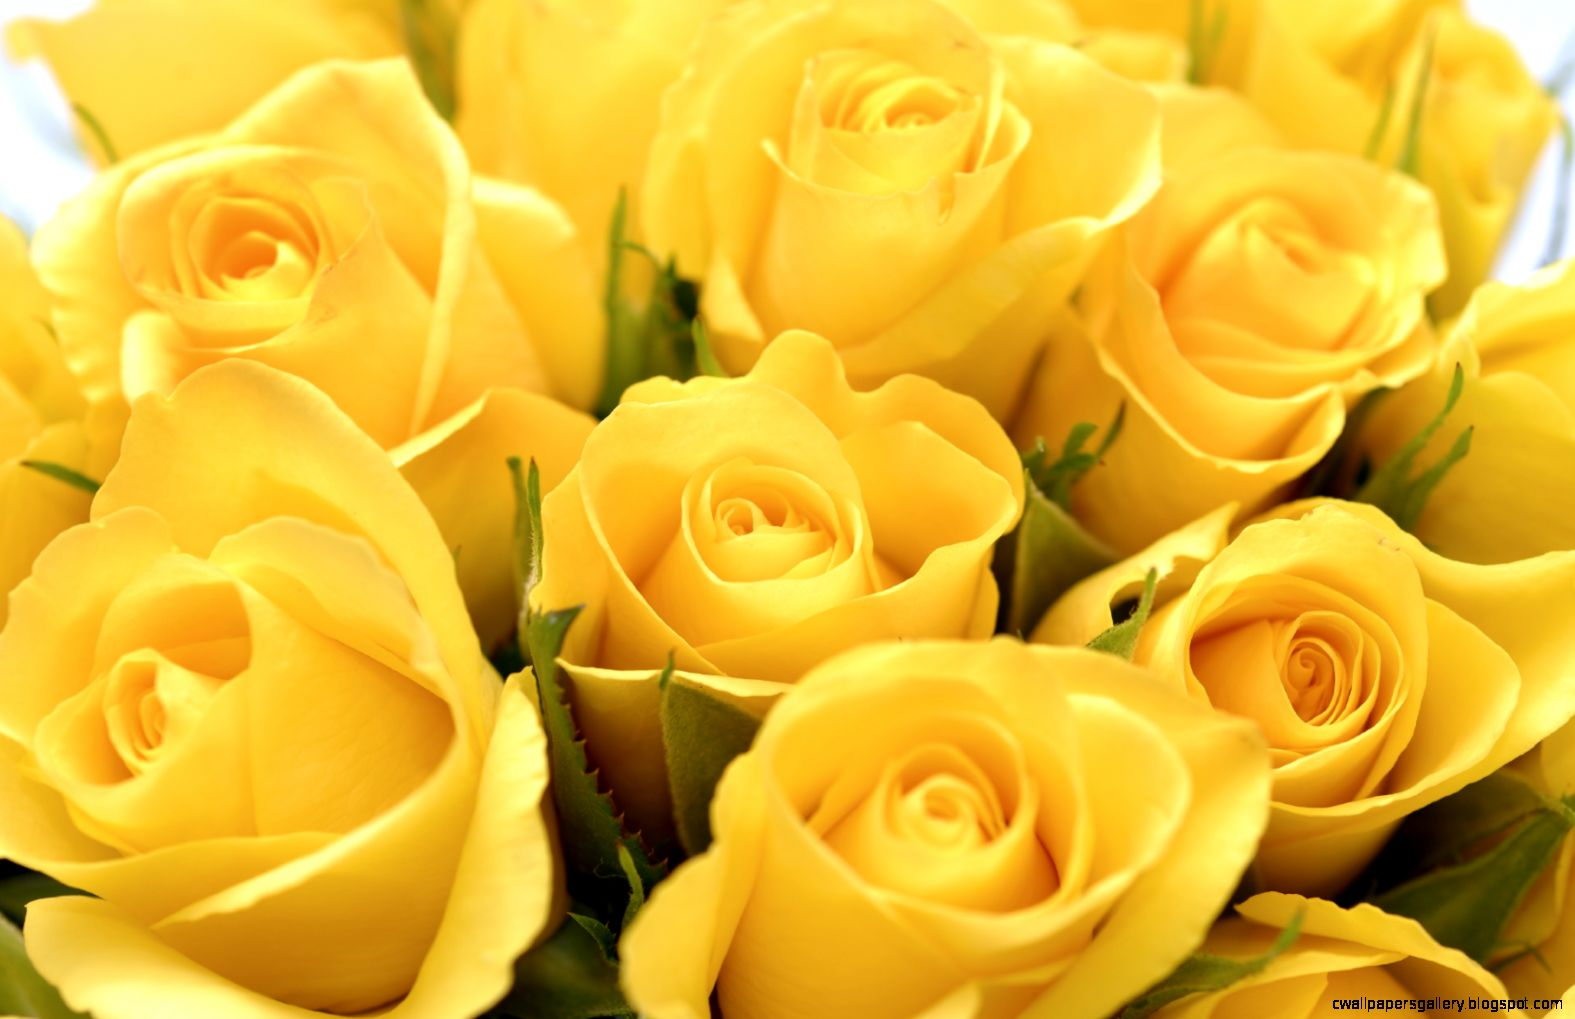 1000 images about Geel rose on Pinterest  Yellow Roses Roses